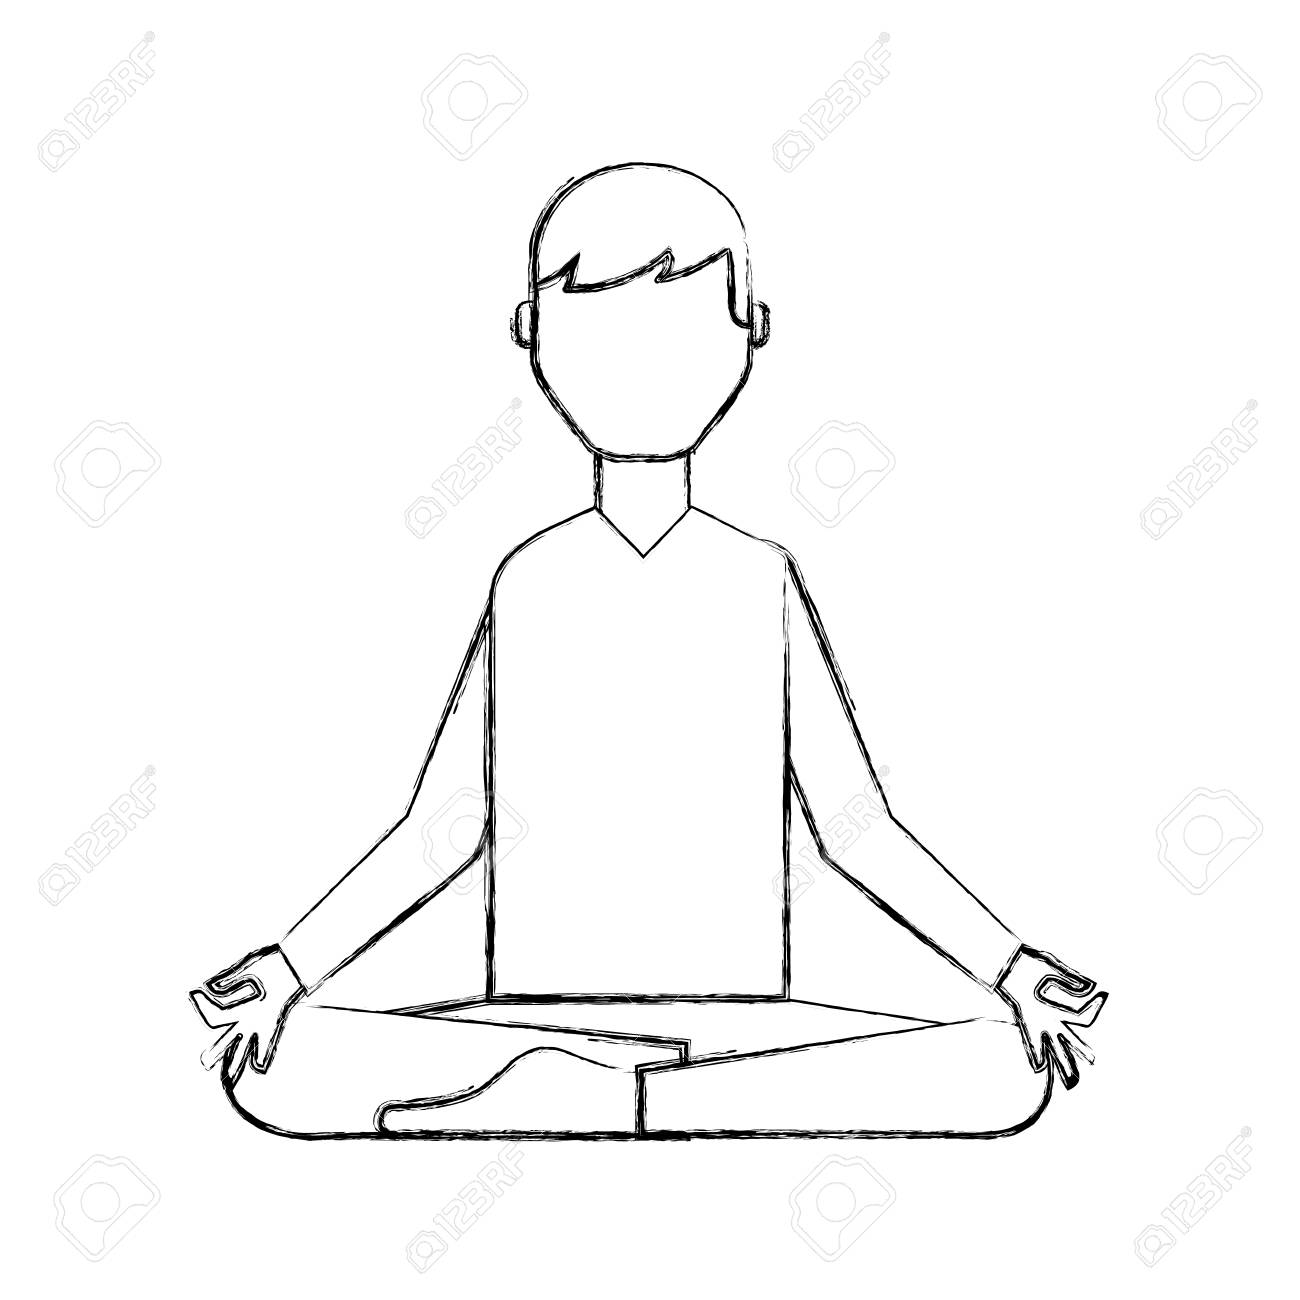 Sketch Draw Lotus Pose Man Cartoon Vector Grahic Design Royalty Free Cliparts Vectors And Stock Illustration Image 79412991